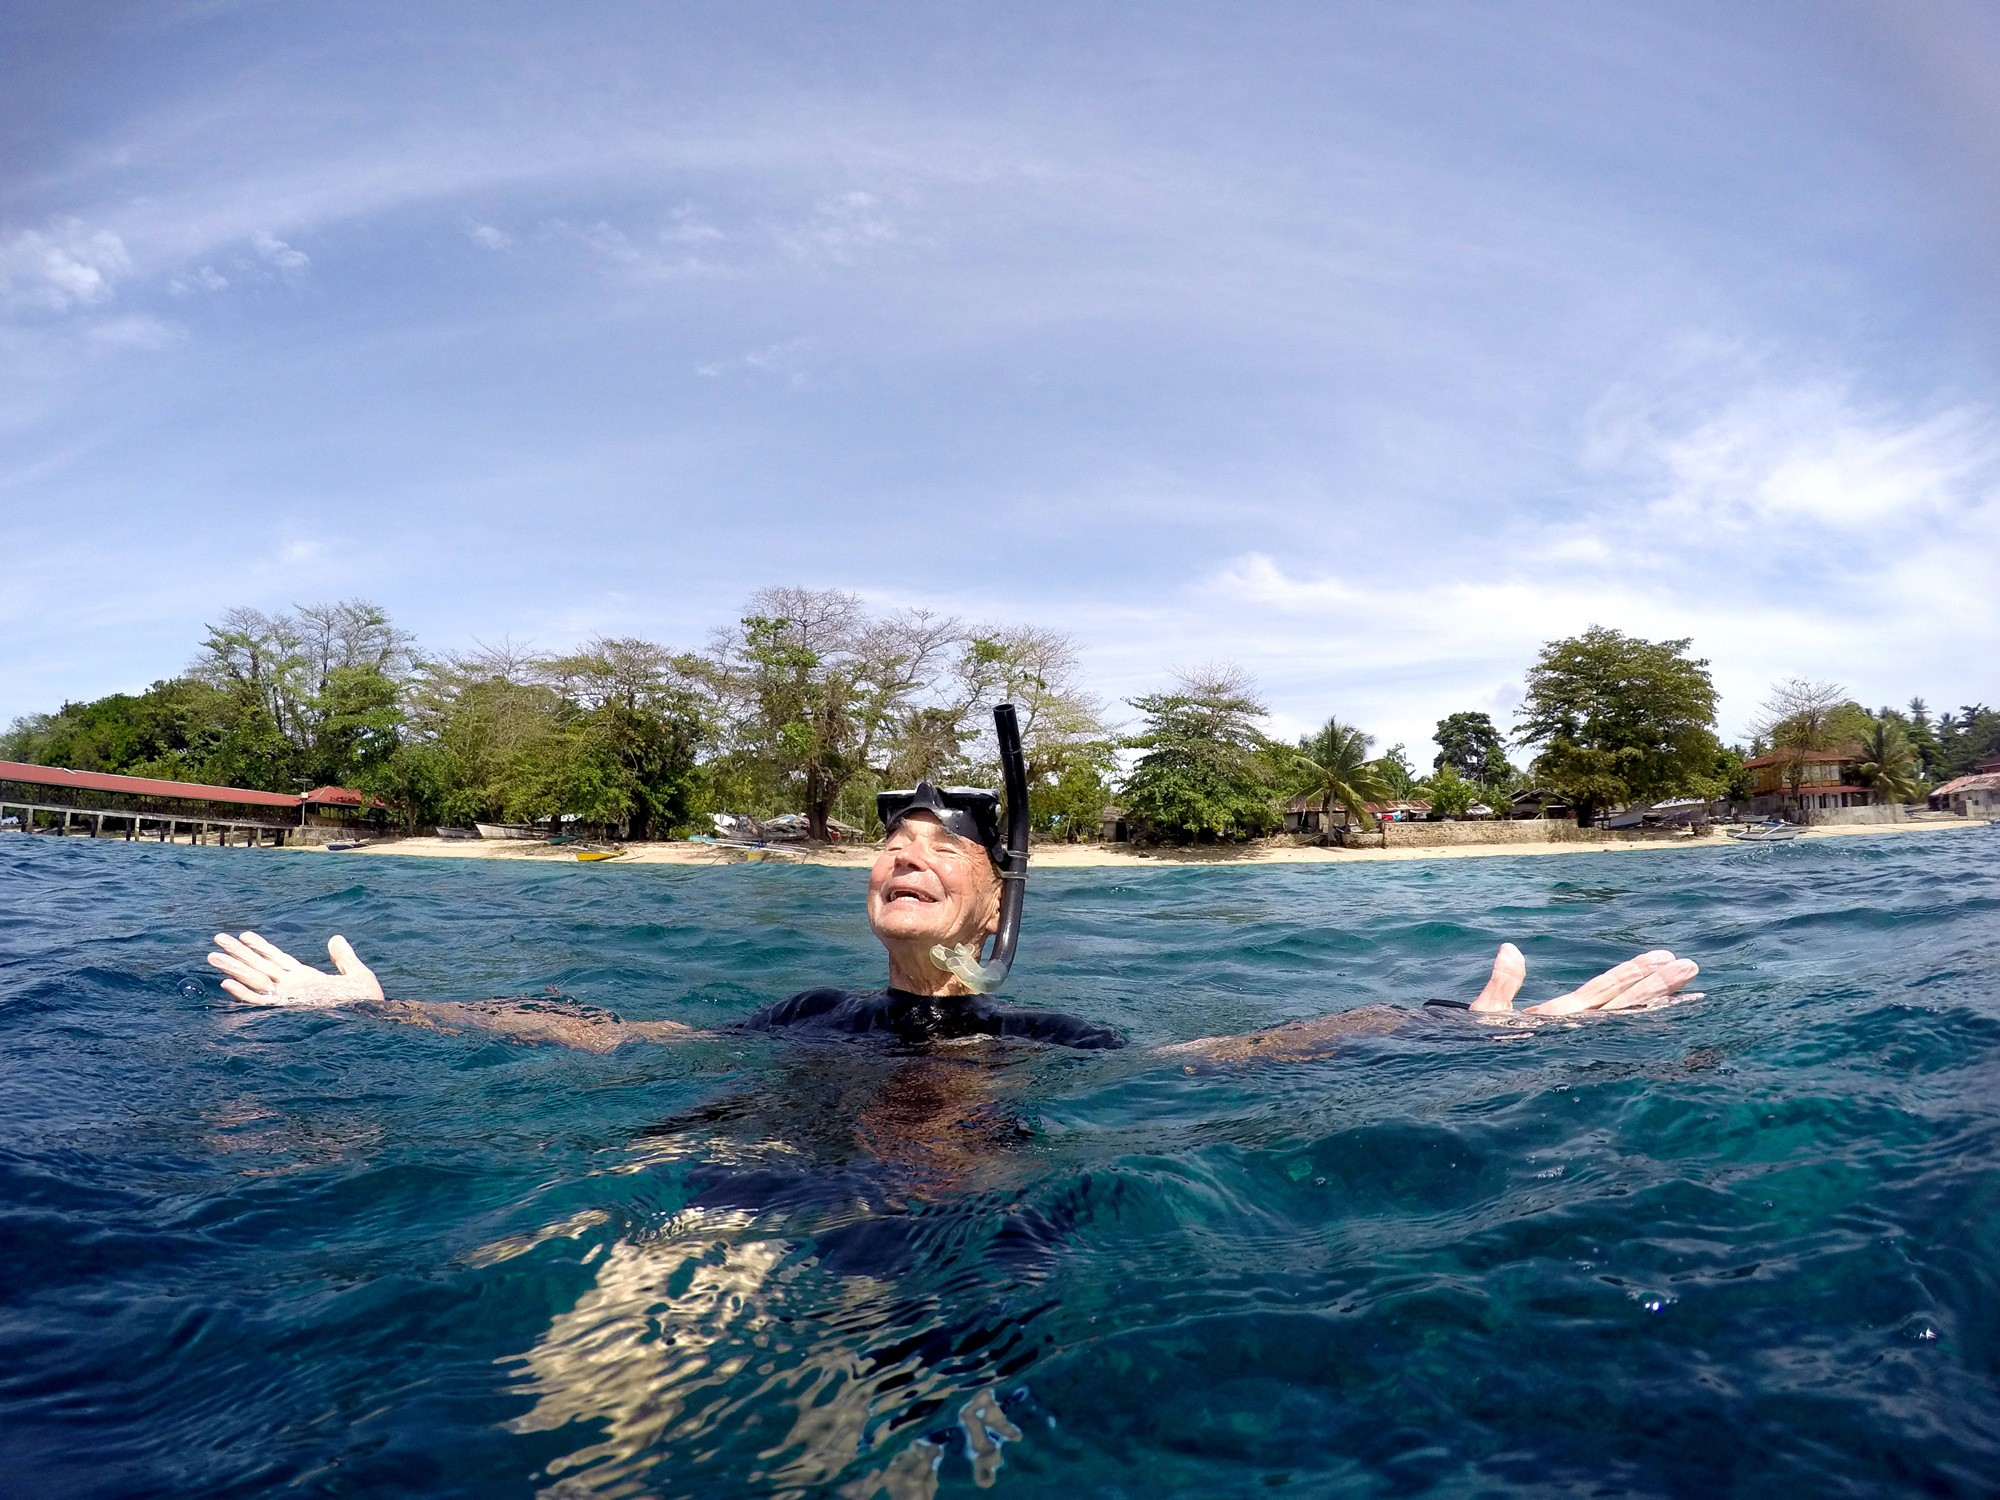 Ernest Brooks snorkeling in Bunaken